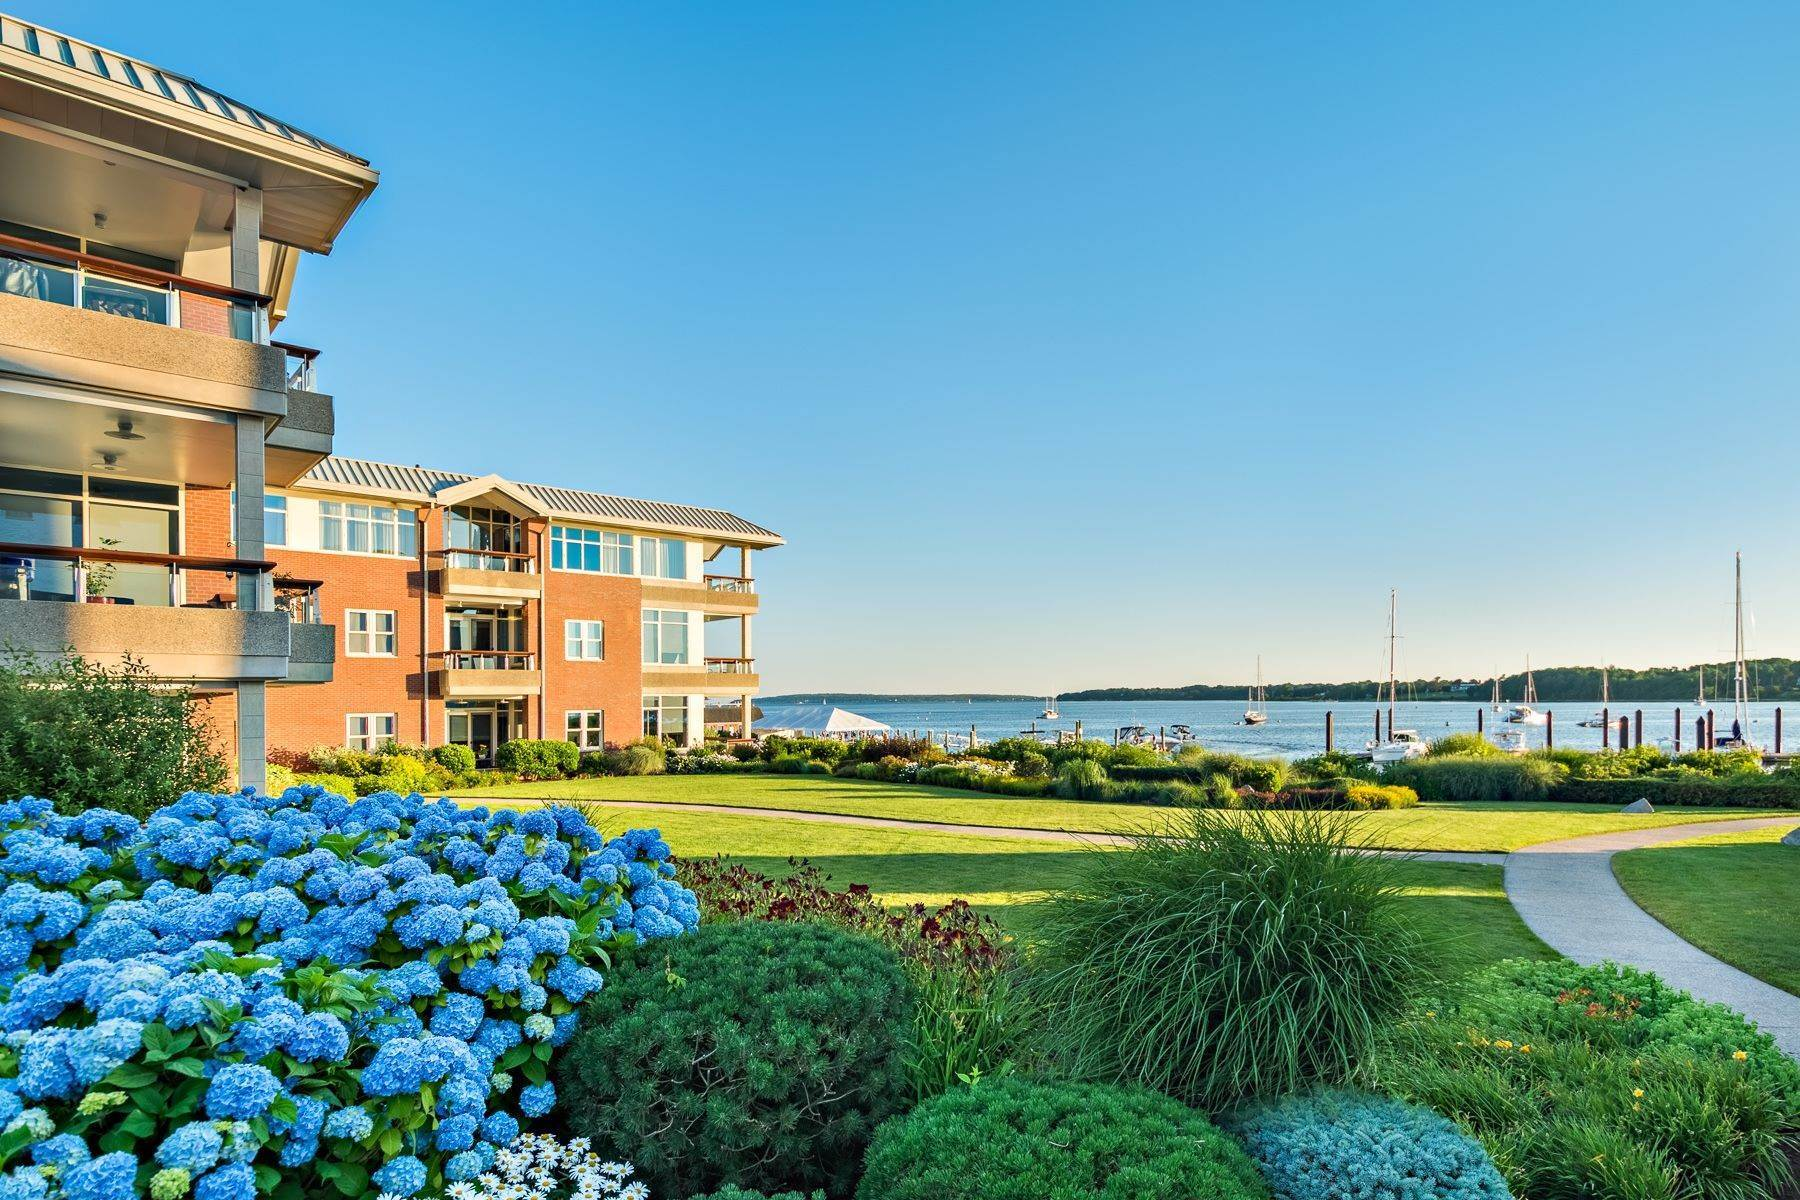 Condominiums for Sale at 341 THAMES ST, UNIT#303S, 303S Bristol, Rhode Island 02809 United States